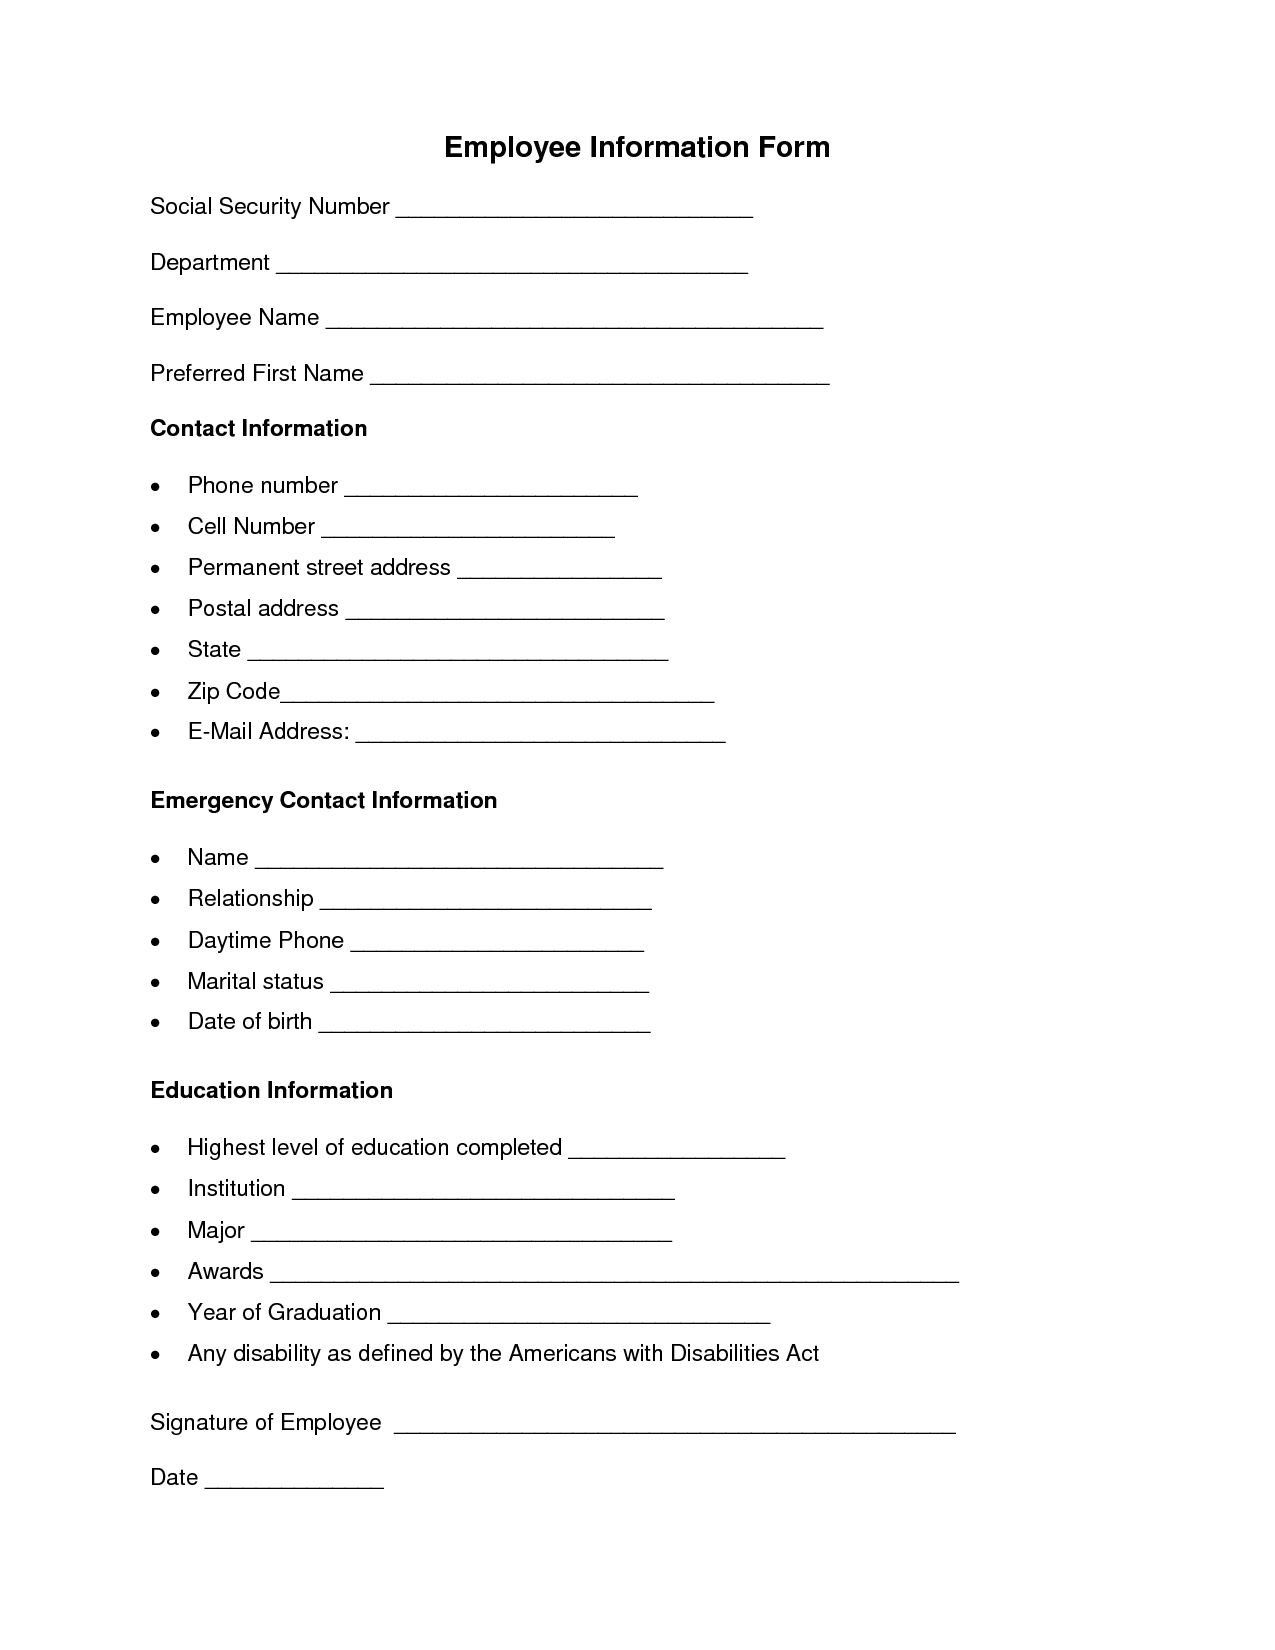 Employee Information Form … | Pinteres…